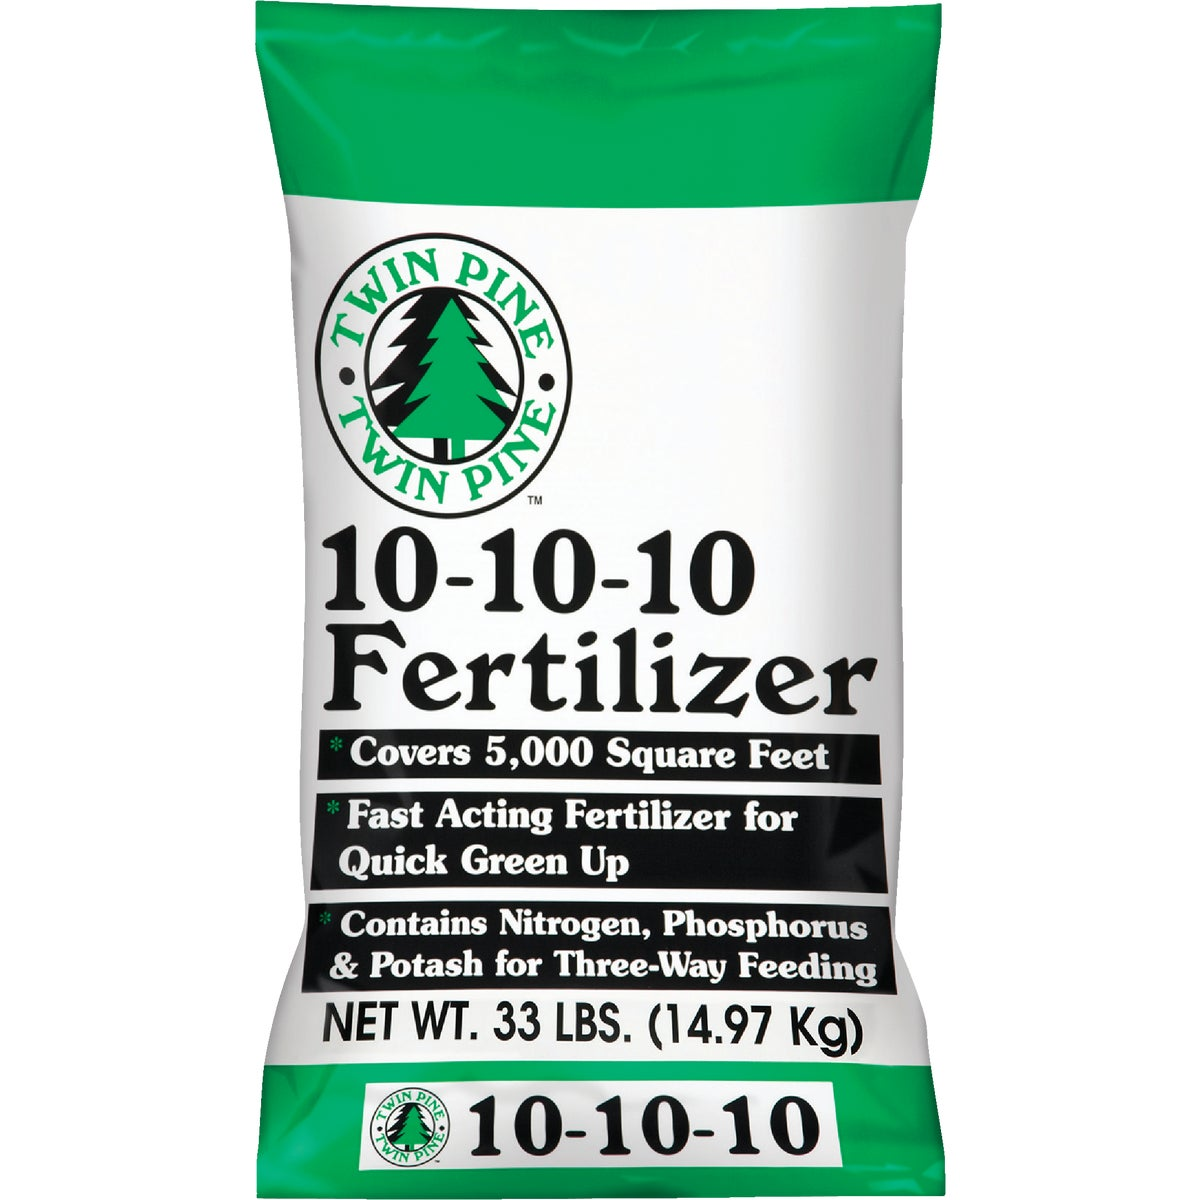 35LB 10-10-10 FERTILIZER - 7136 by Howard Johnsons